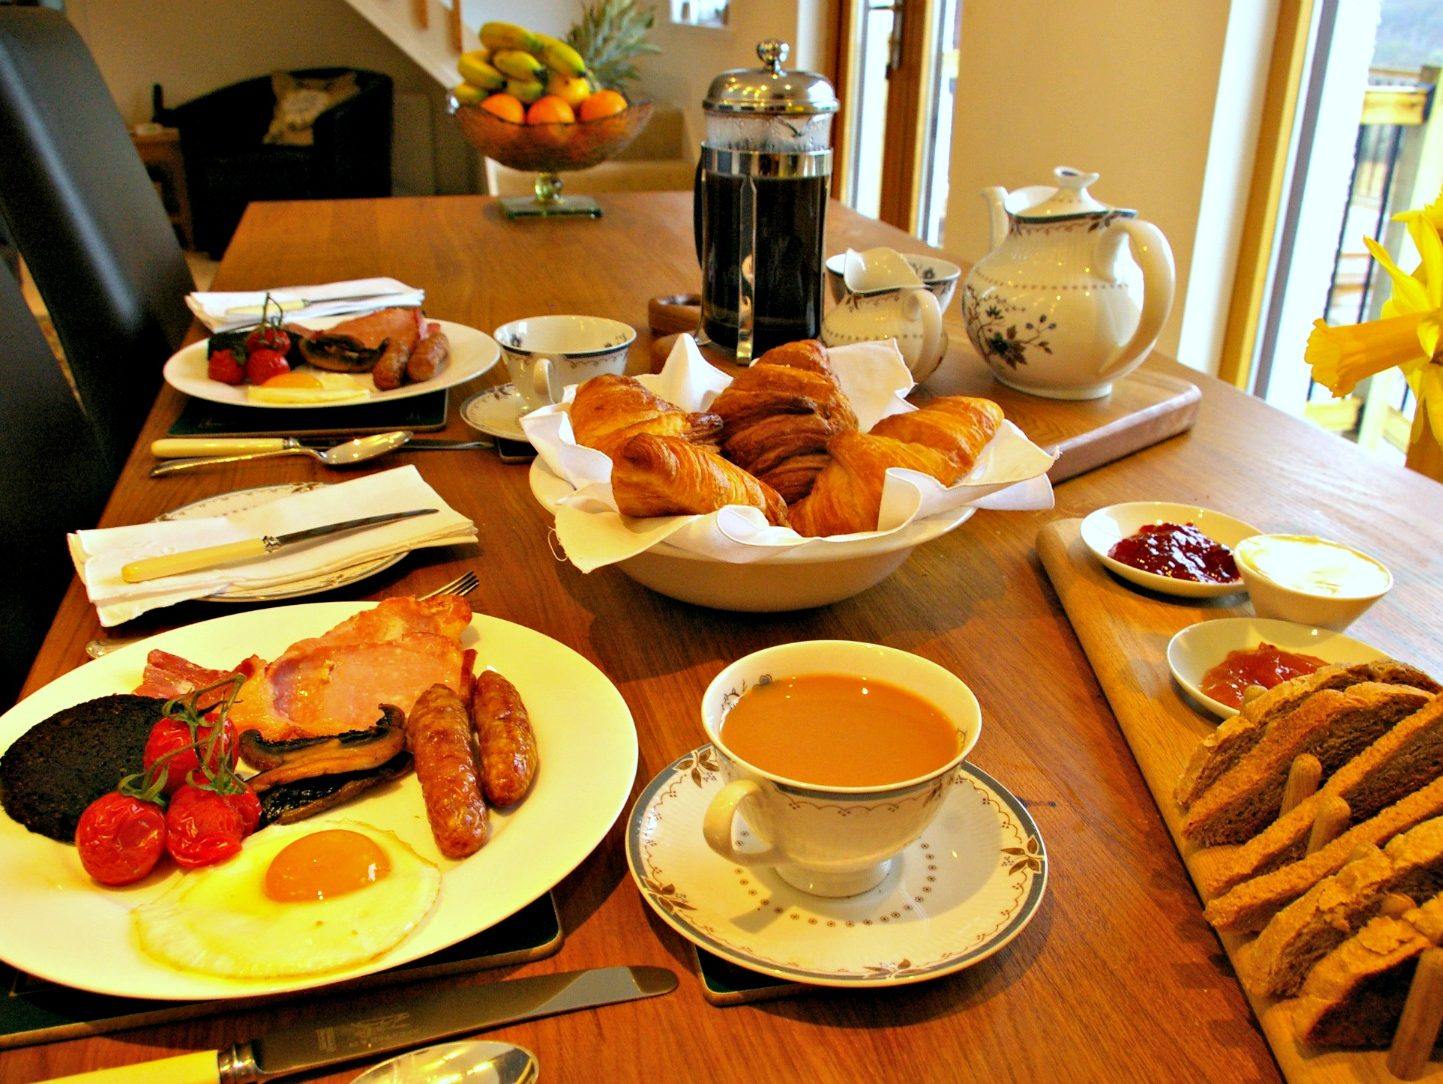 Full cooked breakfast at Ceol Mor B&B using local ingredients